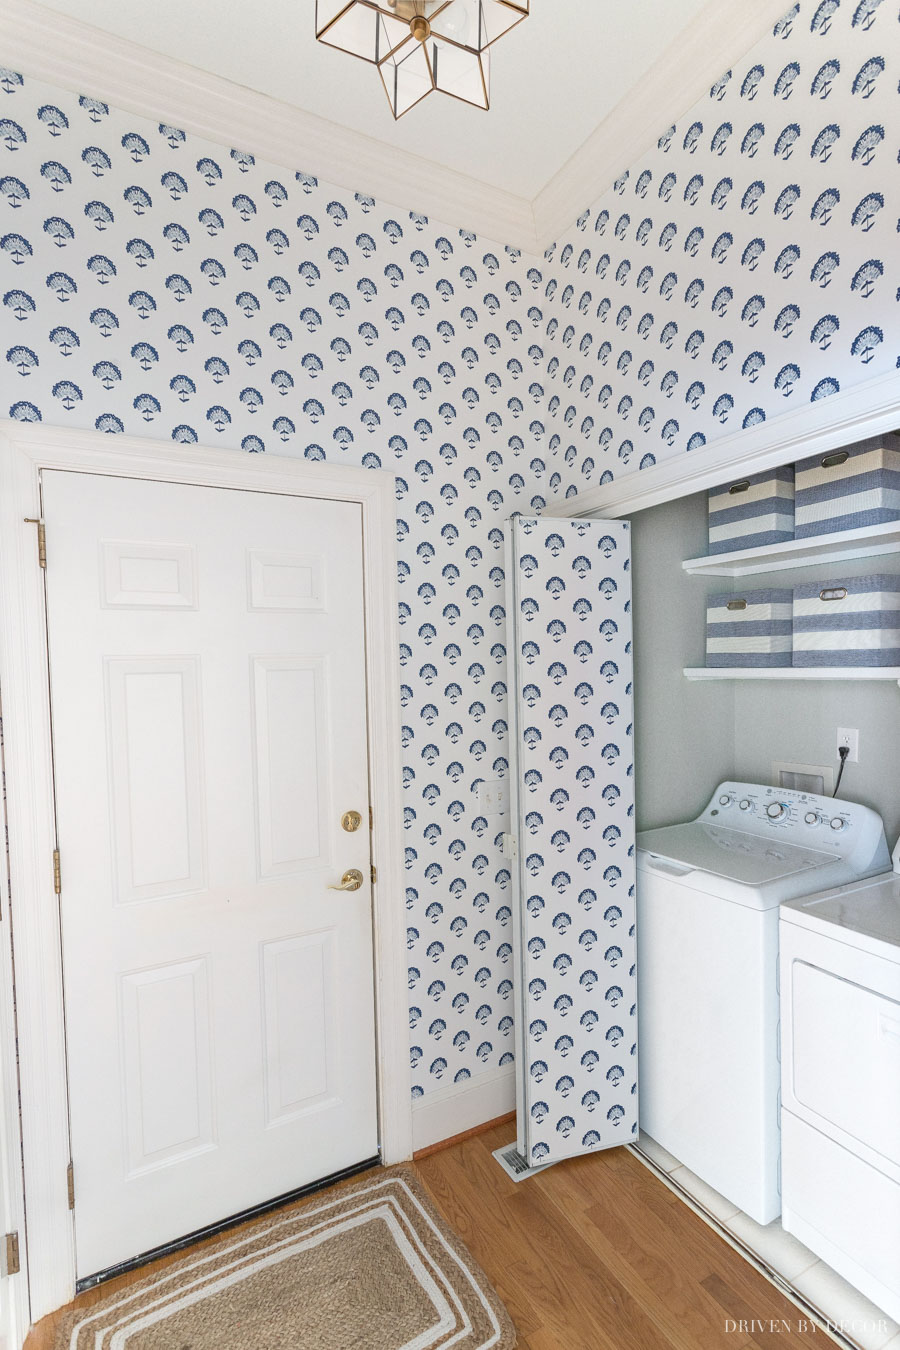 Our newly wallpapered laundry room!